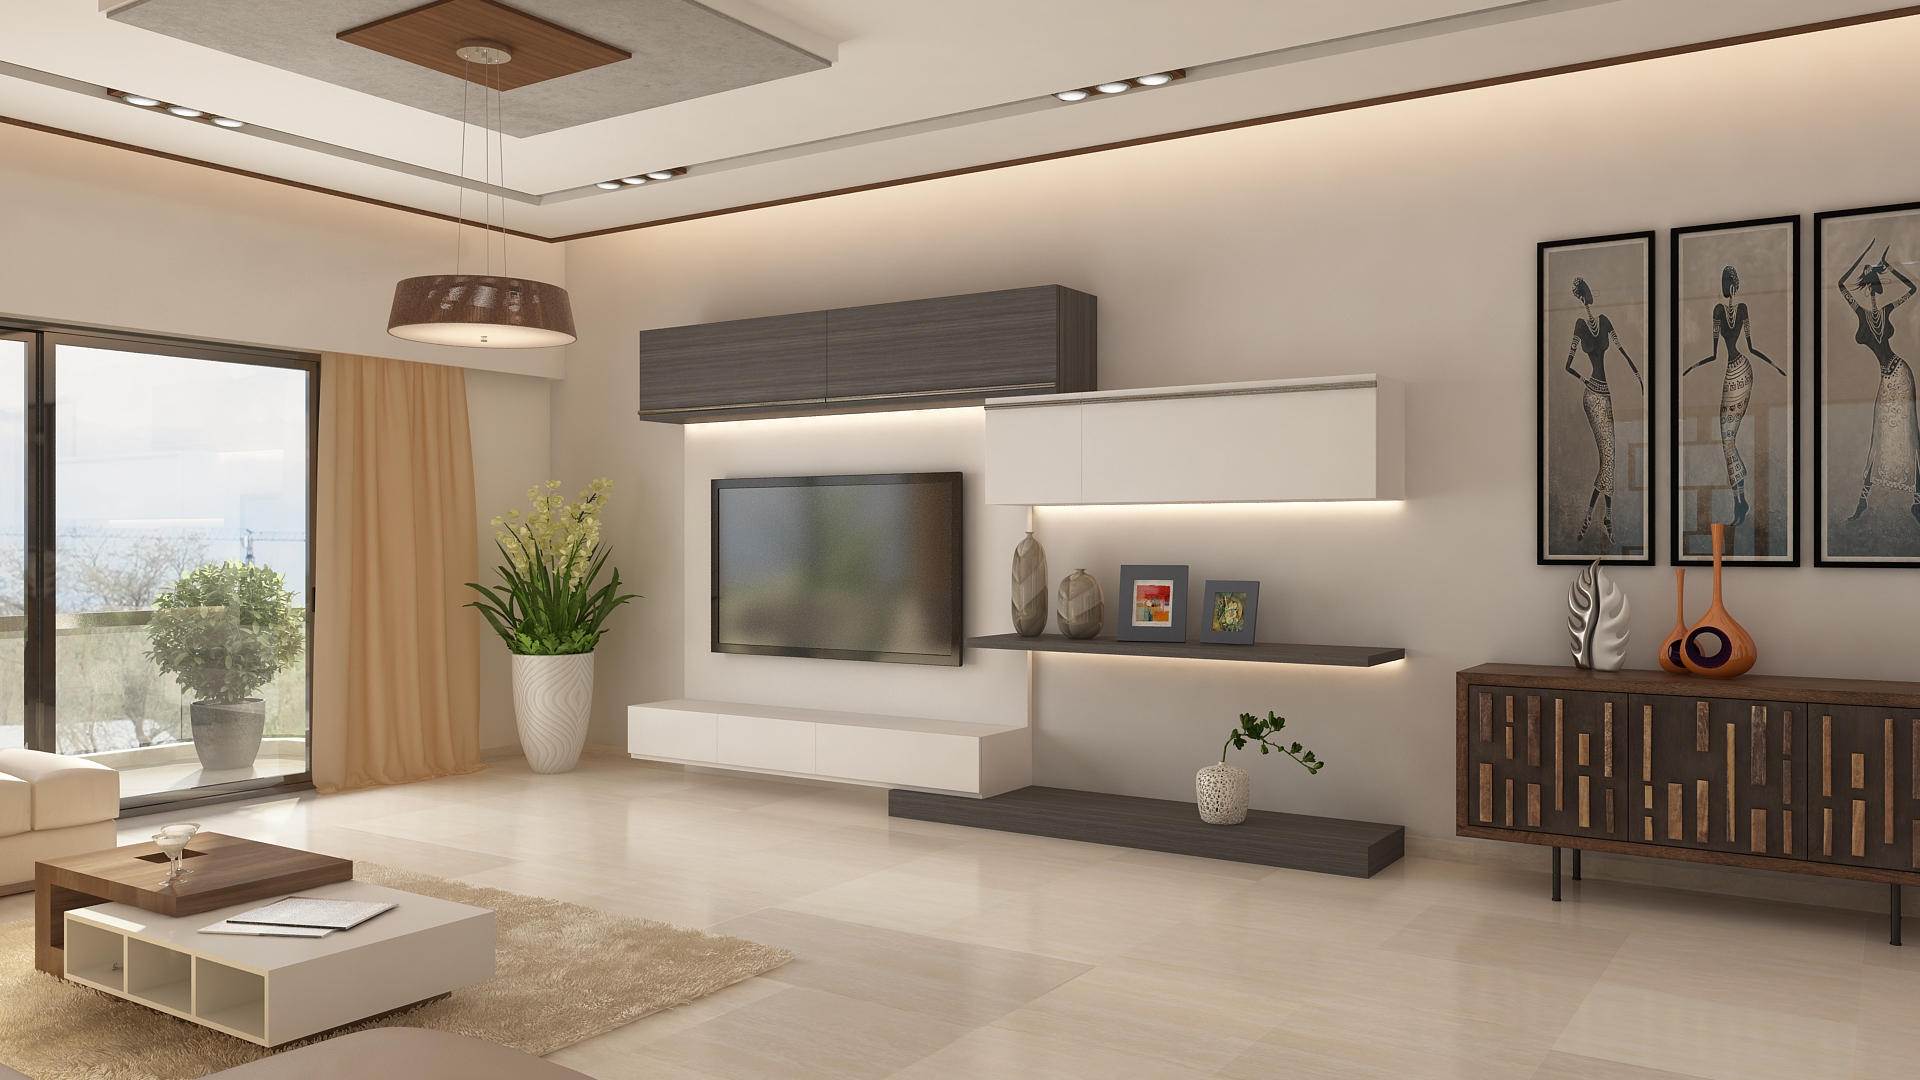 3d Design Furniture Ghar360 Portfolio 2 Bhk Apartment Interior Design In Jp